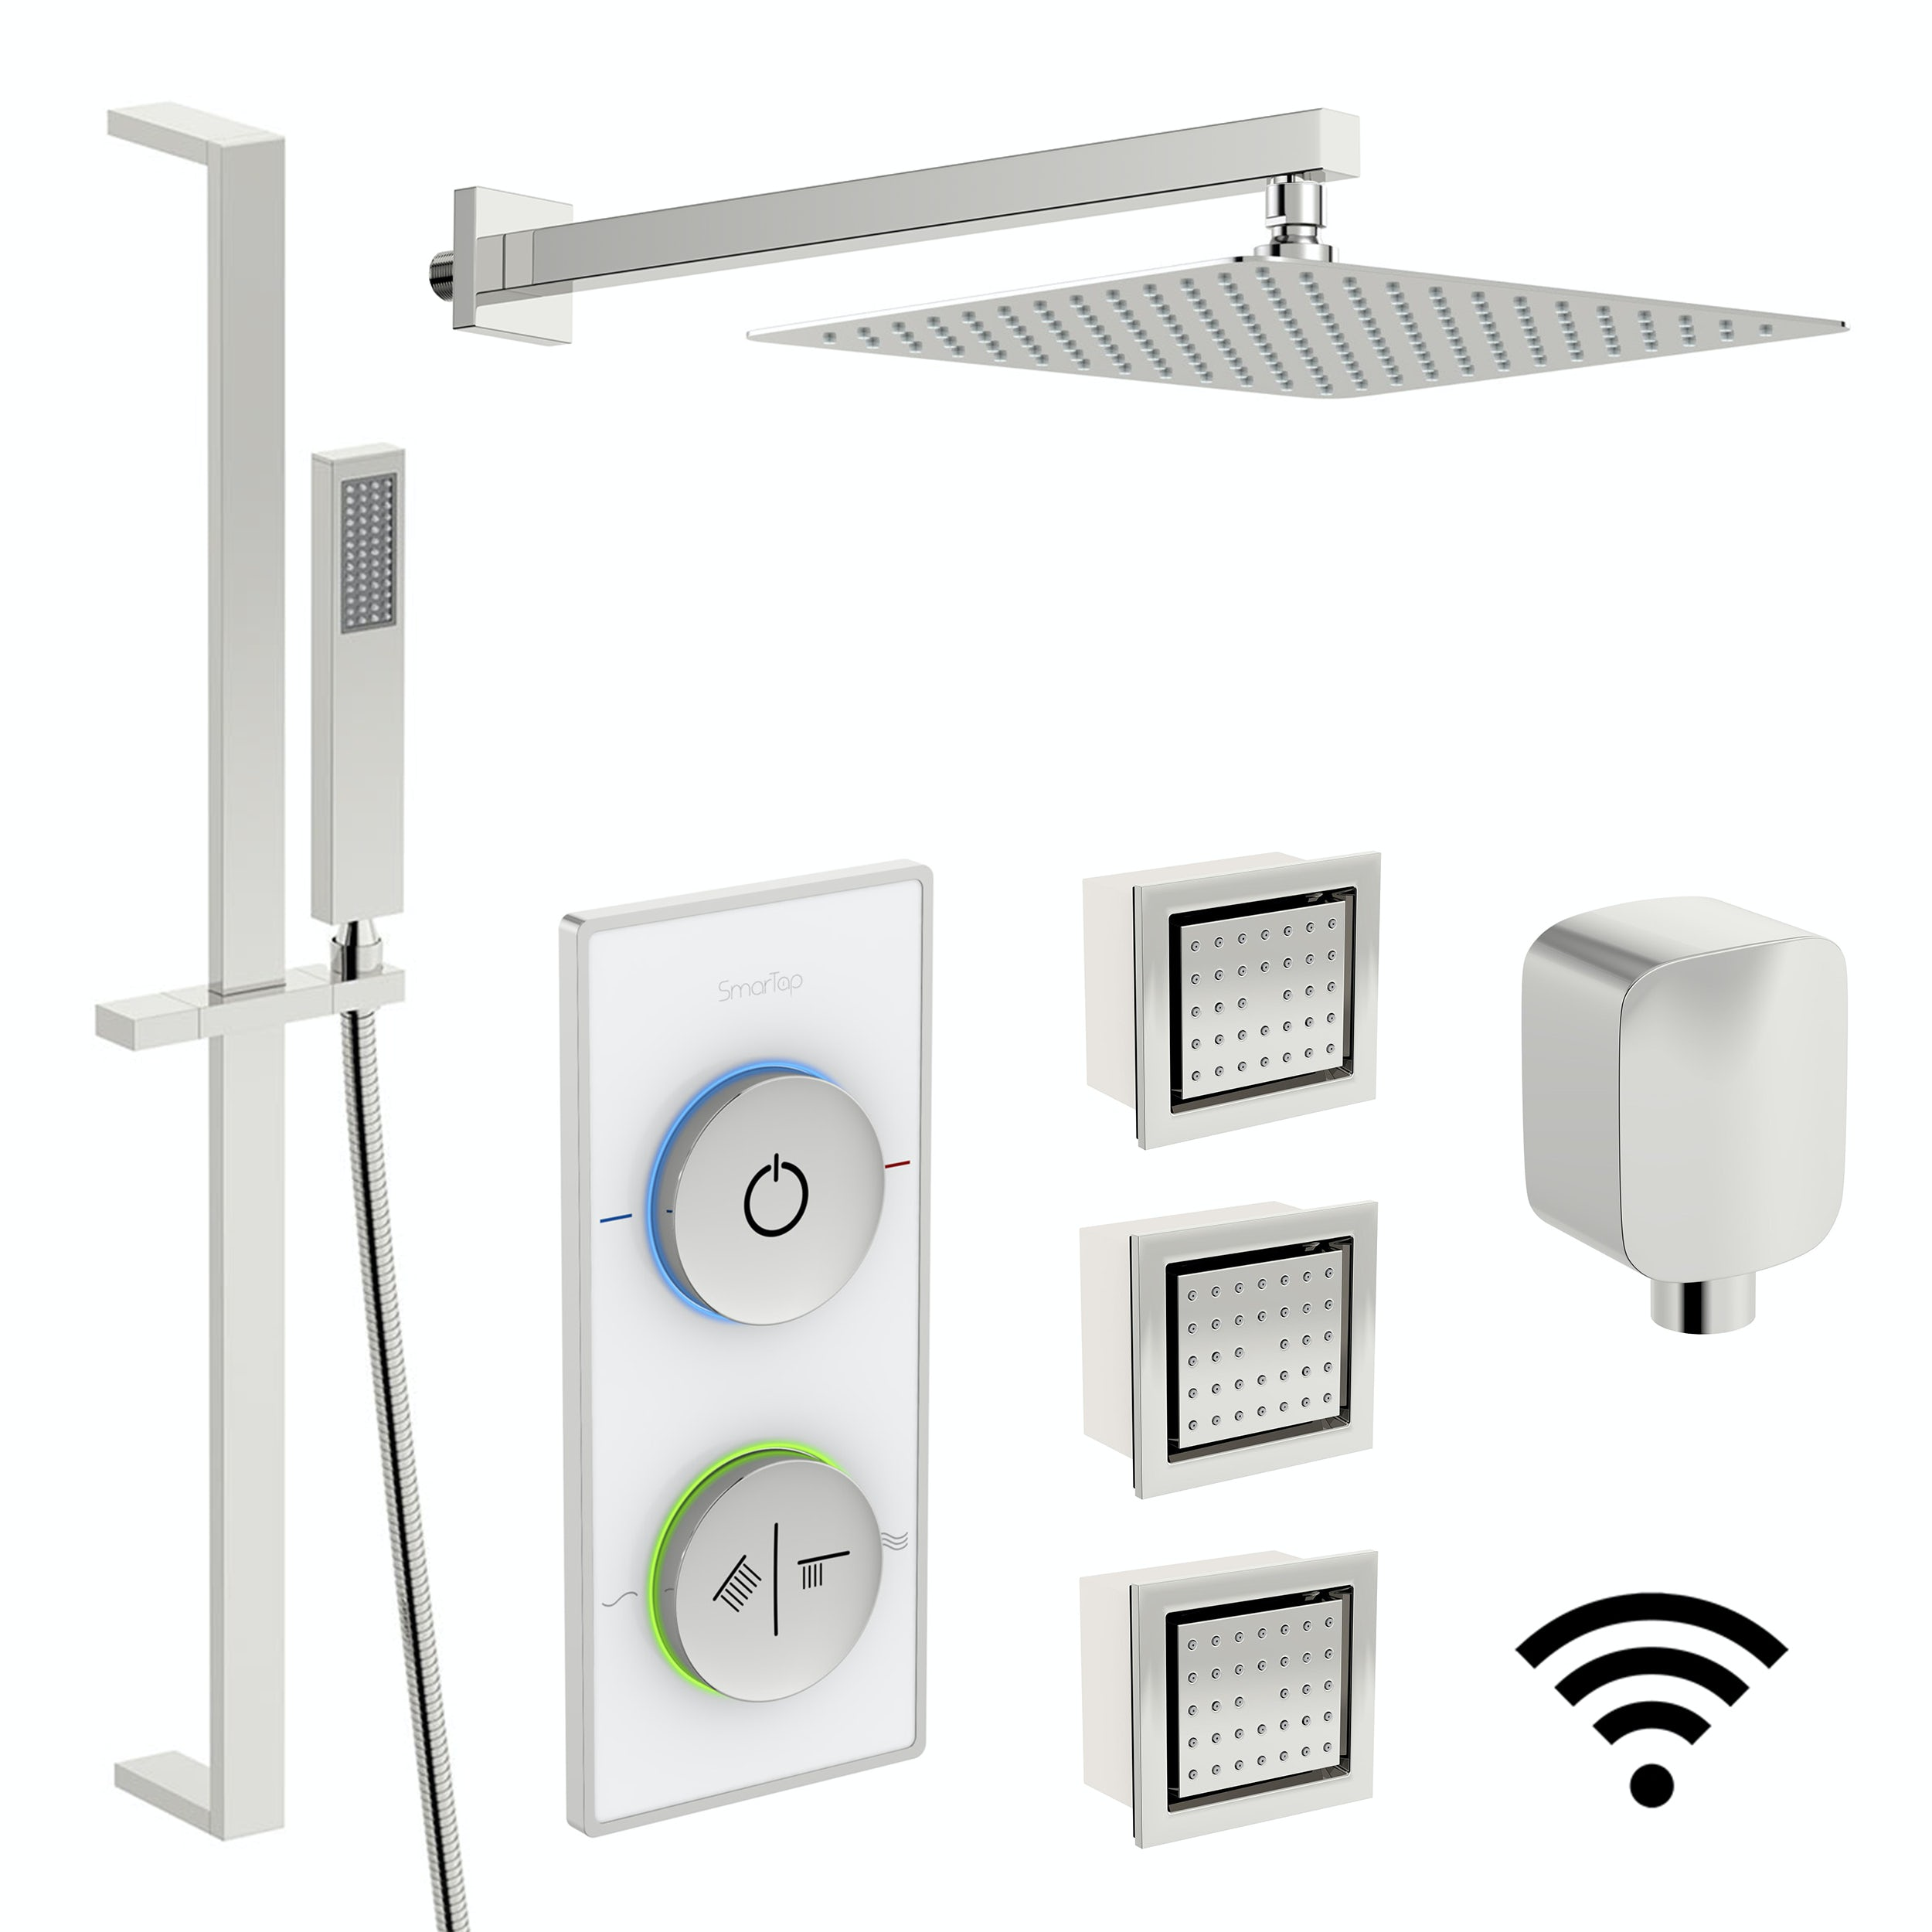 SmarTap white smart shower system with complete square wall shower set